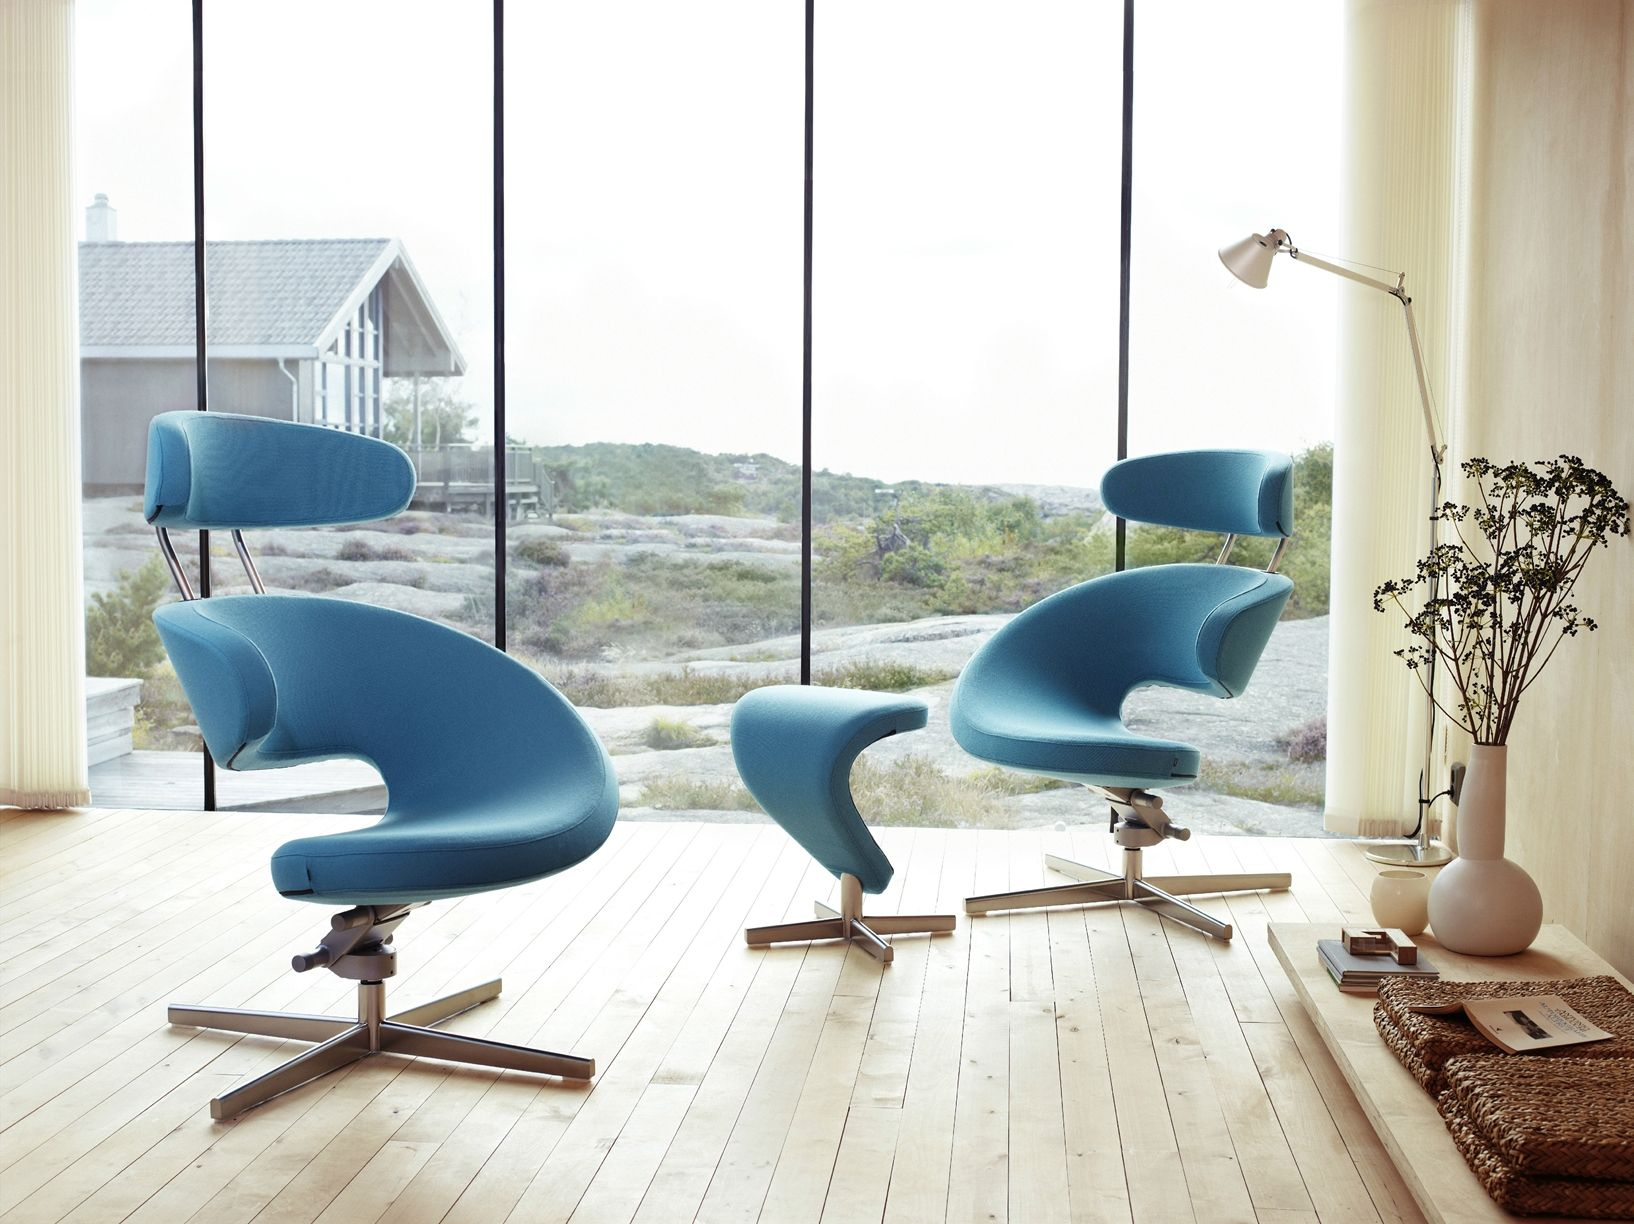 Ergonomic Chair Norway Holiday Christmas Covers Inside Varier I Love Funky Furniture